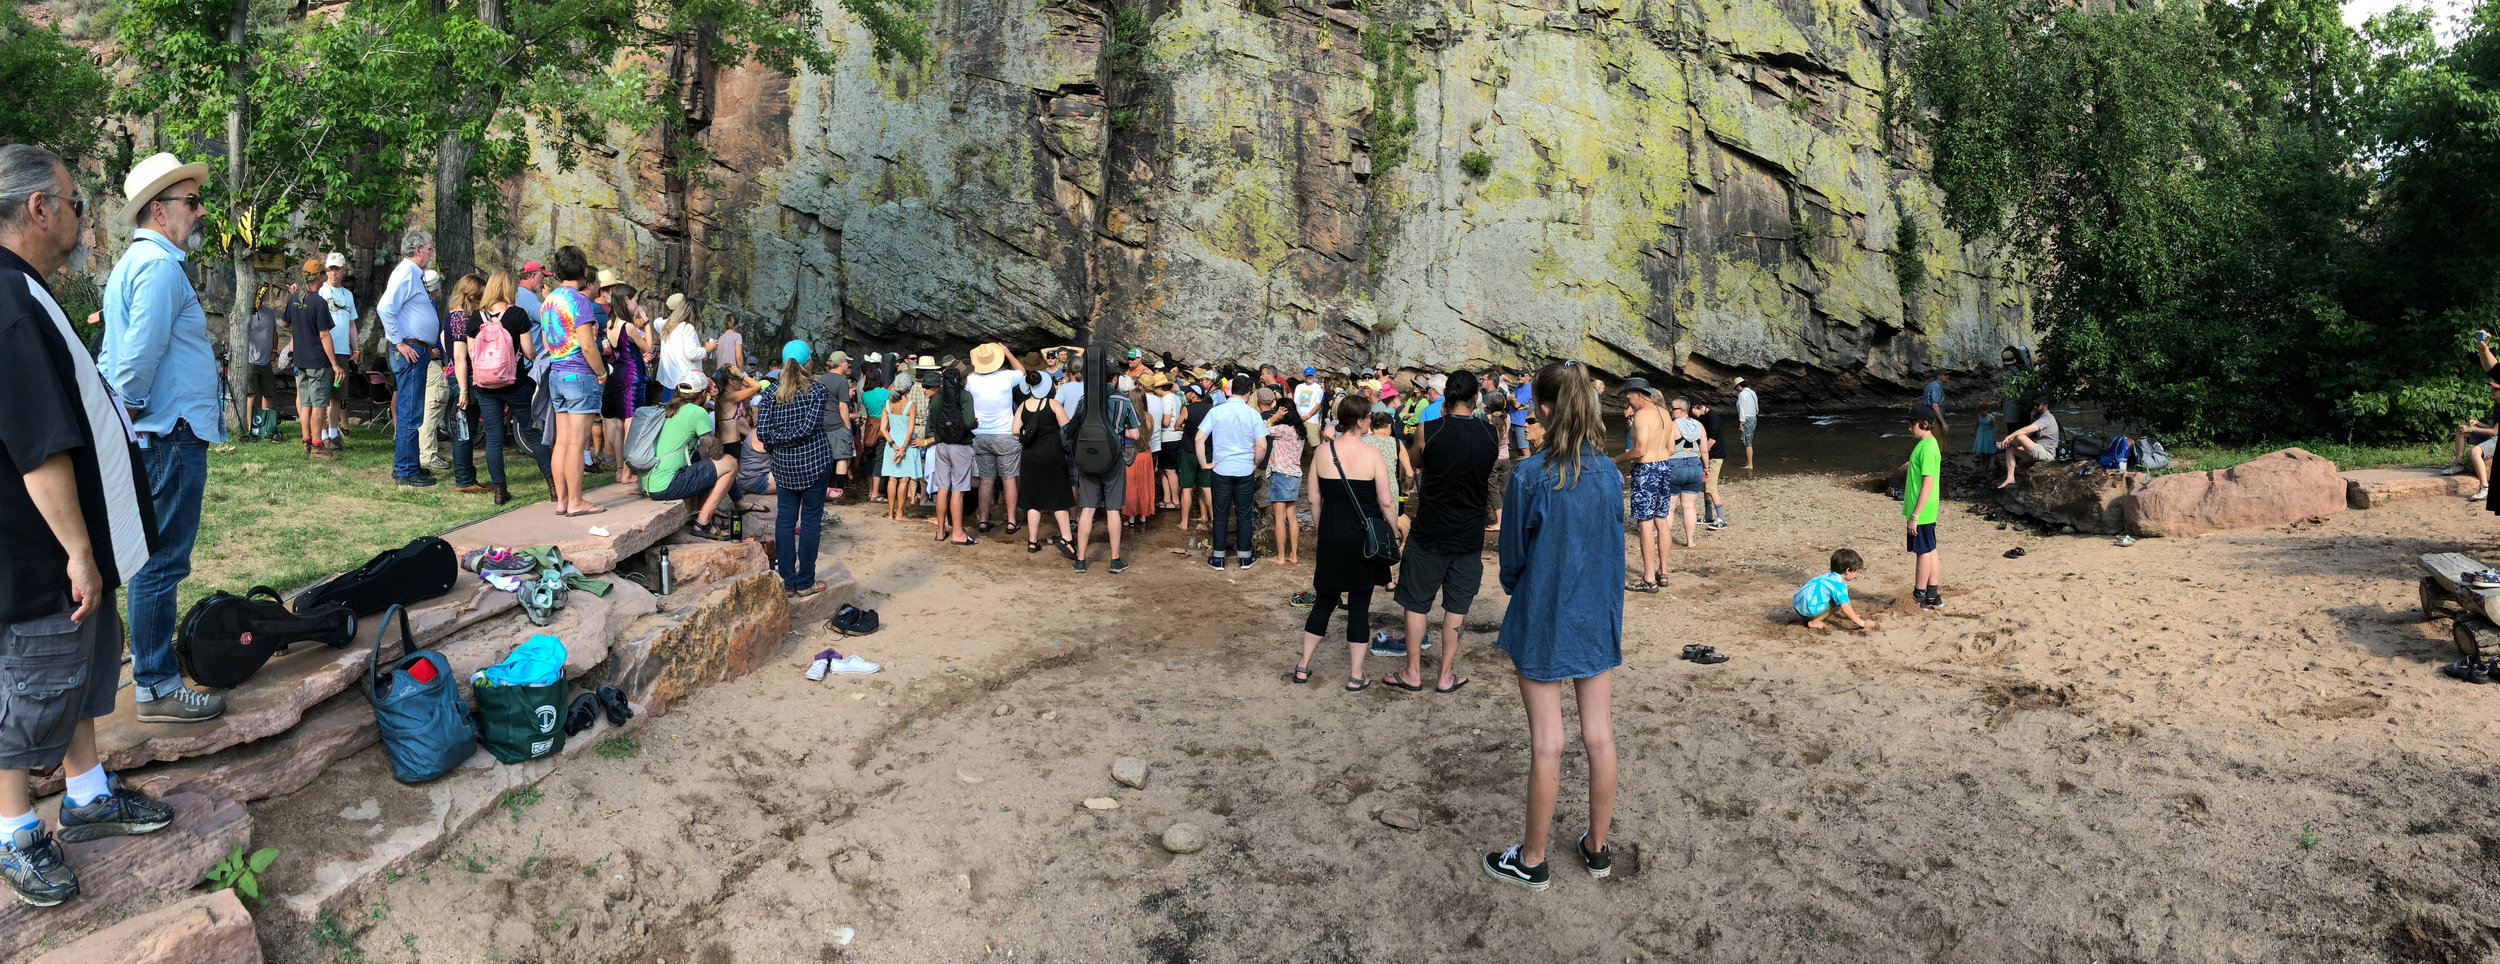 Attendees at the 2017 RockyGrass Academy singing gospel in the St. Vrain river at the culmination of the Academy.